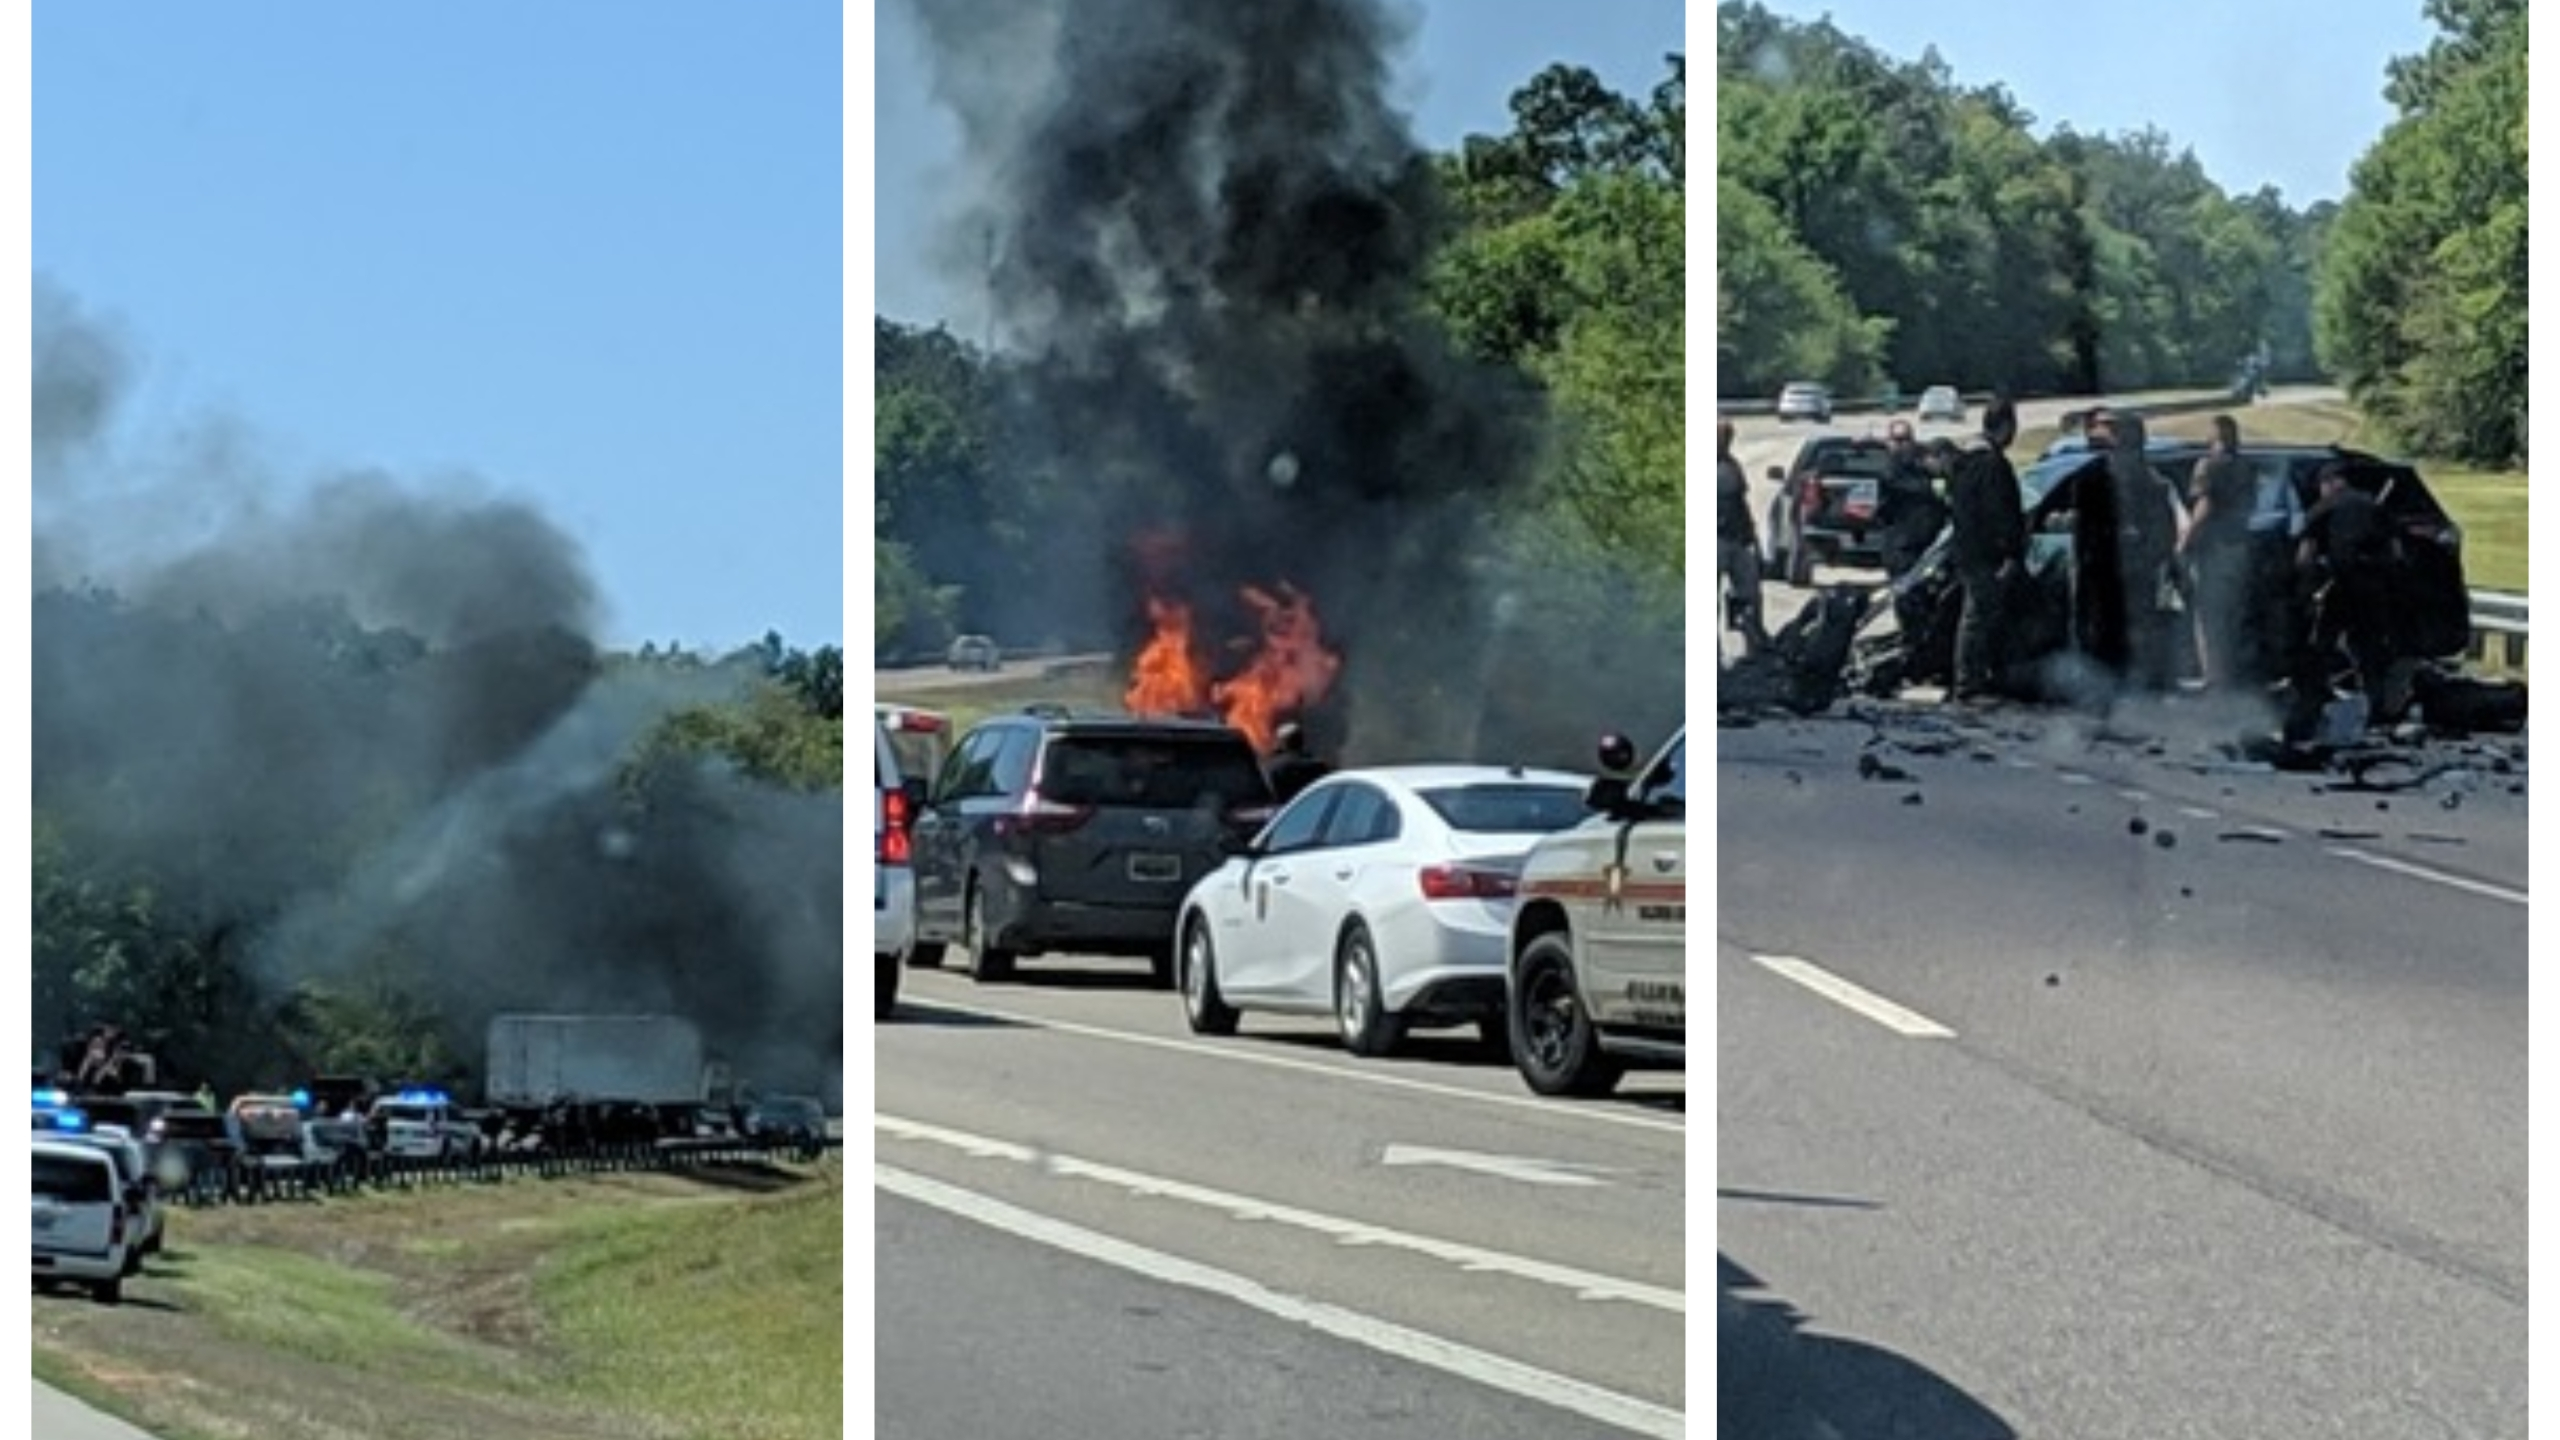 Mobile I10 Fire Crash